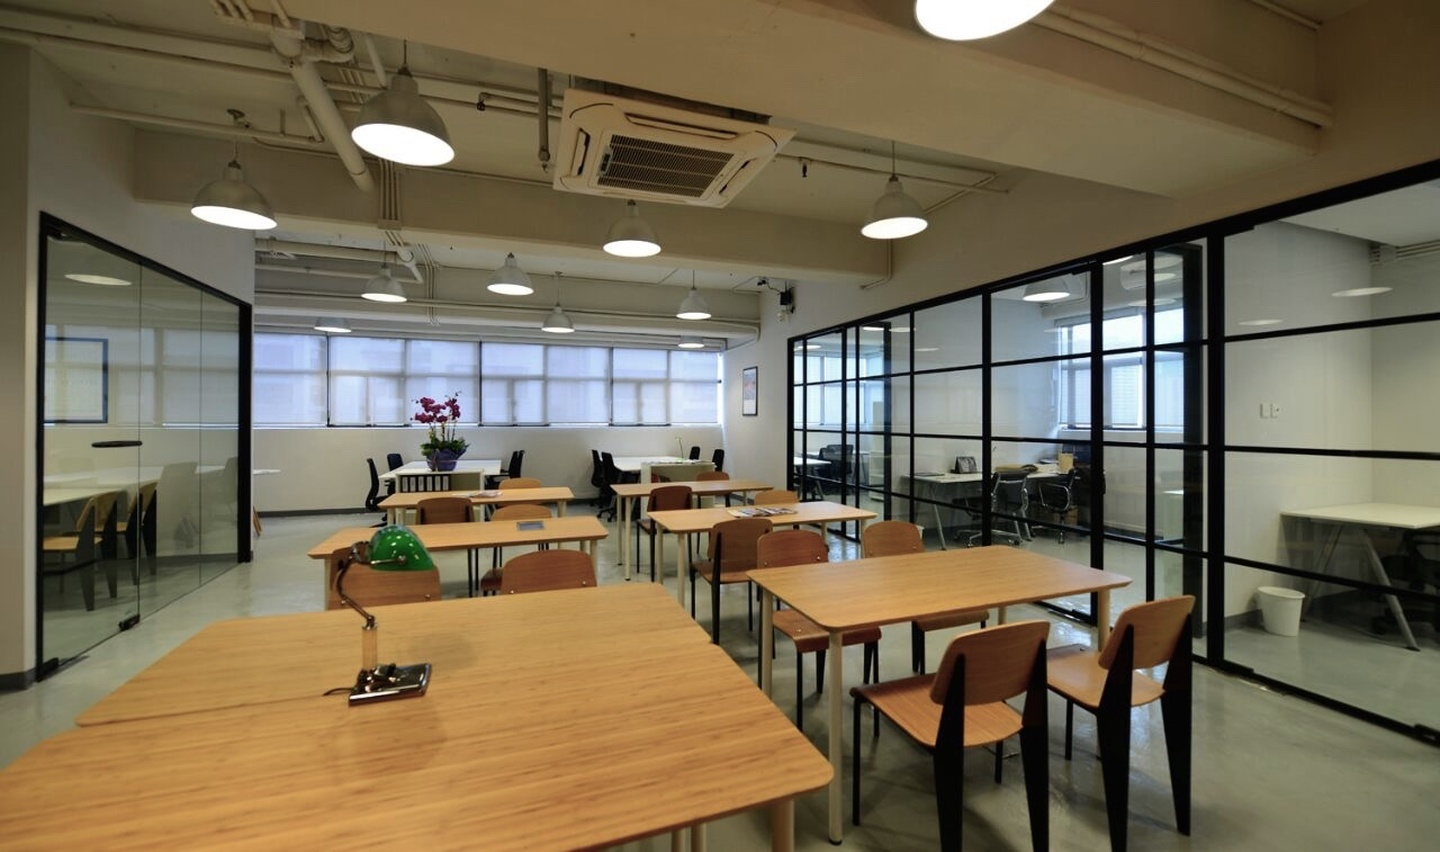 Hong Kong seminar rooms Coworking Space TCH Cowork space - hot desk area image 0